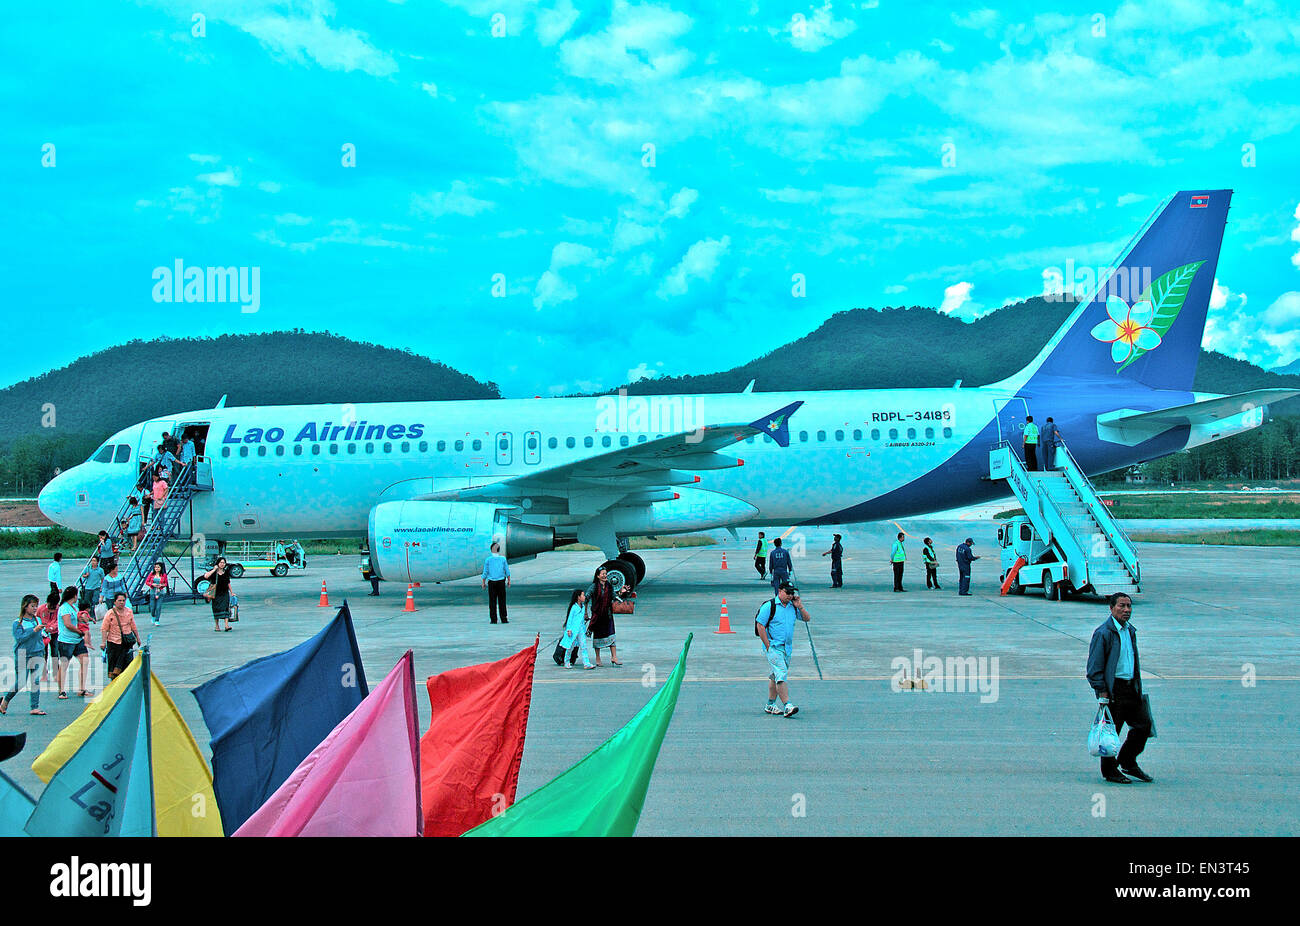 passengers leaving an Airbus A320-214 of Lao airlines Luang Prabang airport Laos - Stock Image